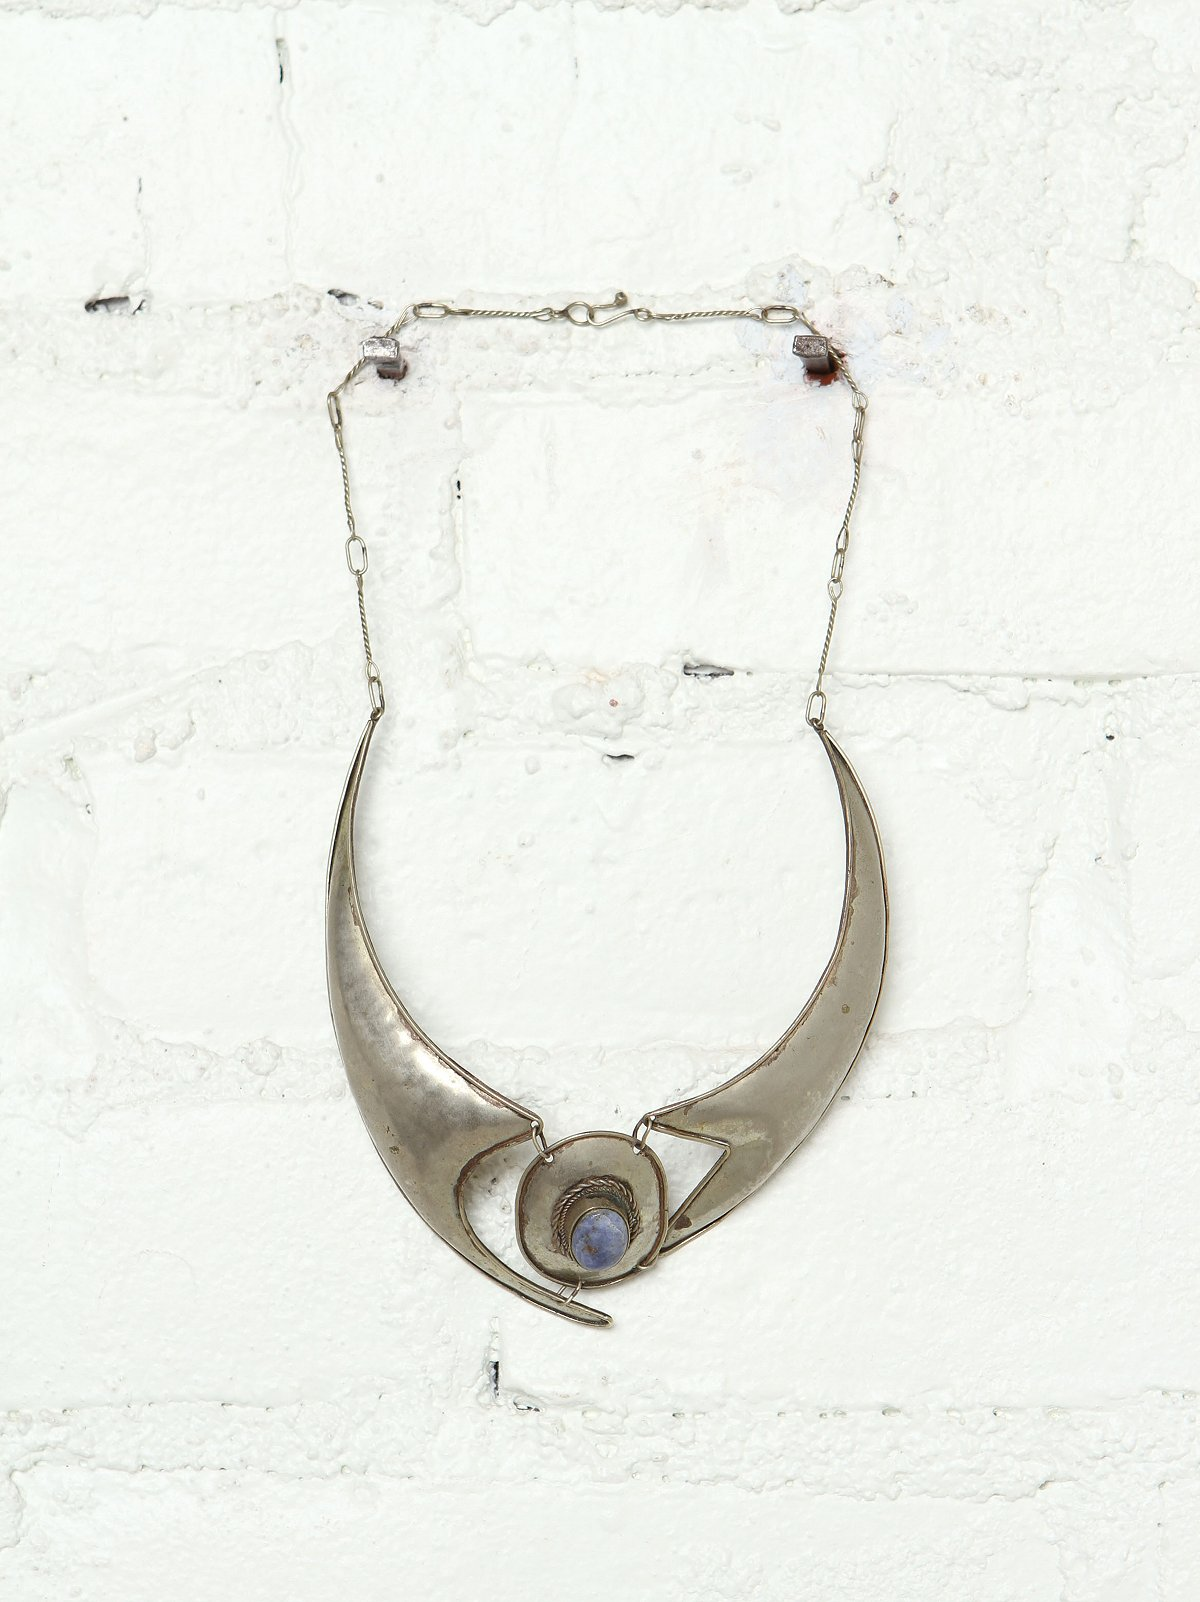 Vintage Distressed Metal Collar Necklace